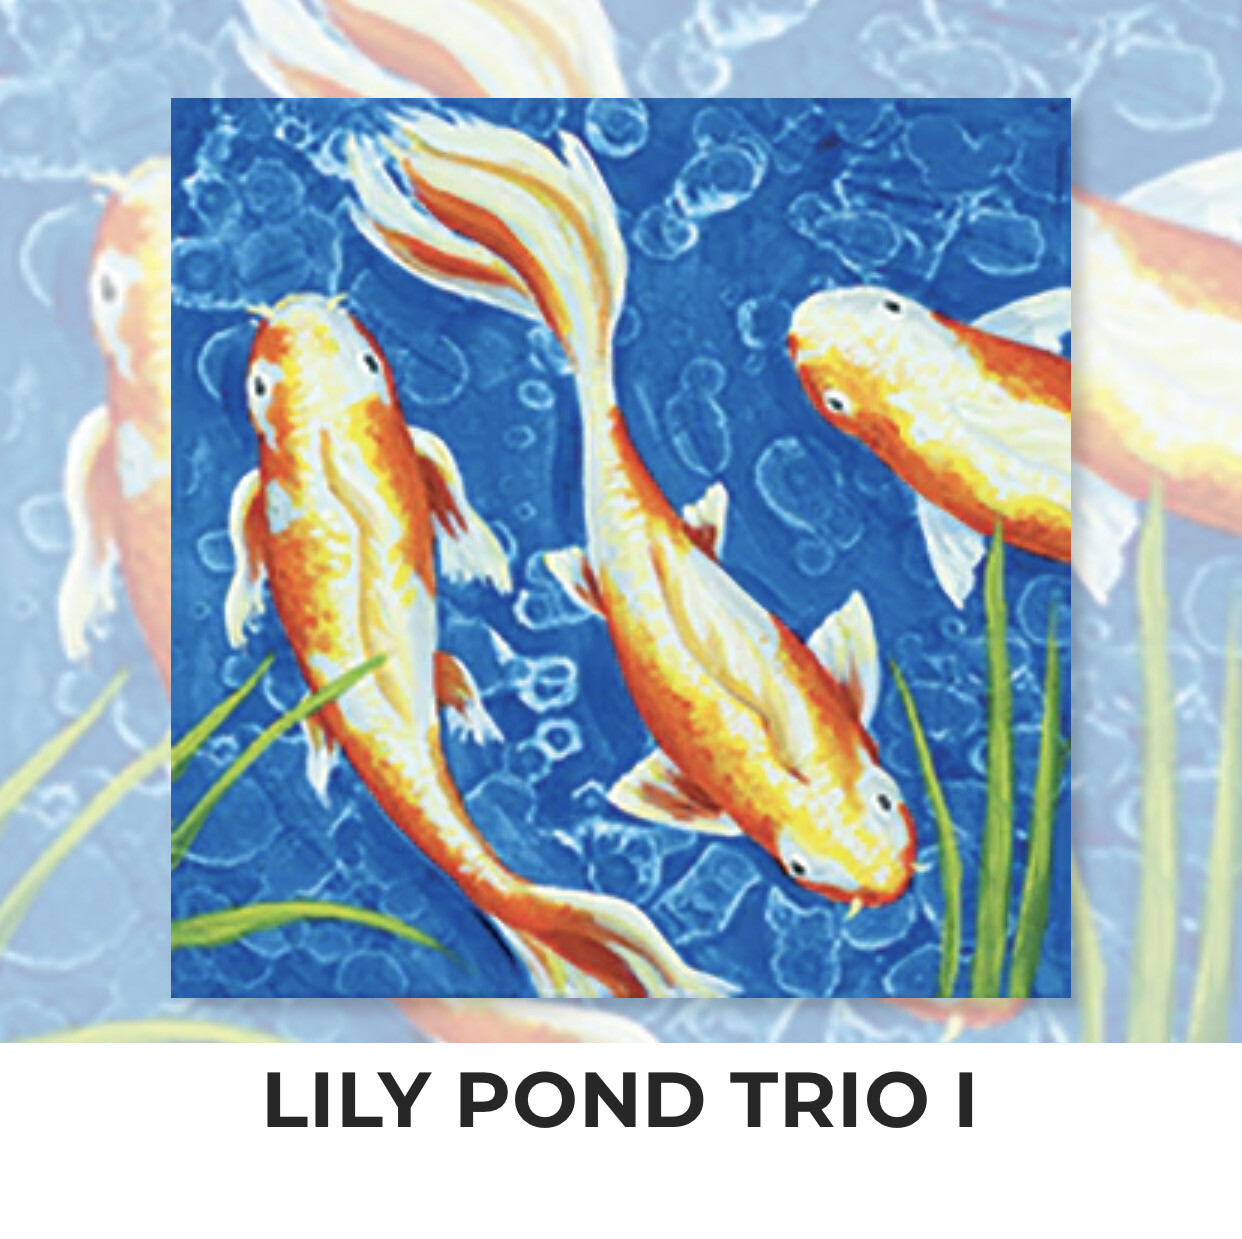 LILY POND TRIO I - Zoom Paint and Sip Night - Thursday, July 1 - 6-8pm - Order By June 15 - Reservation For One Adult